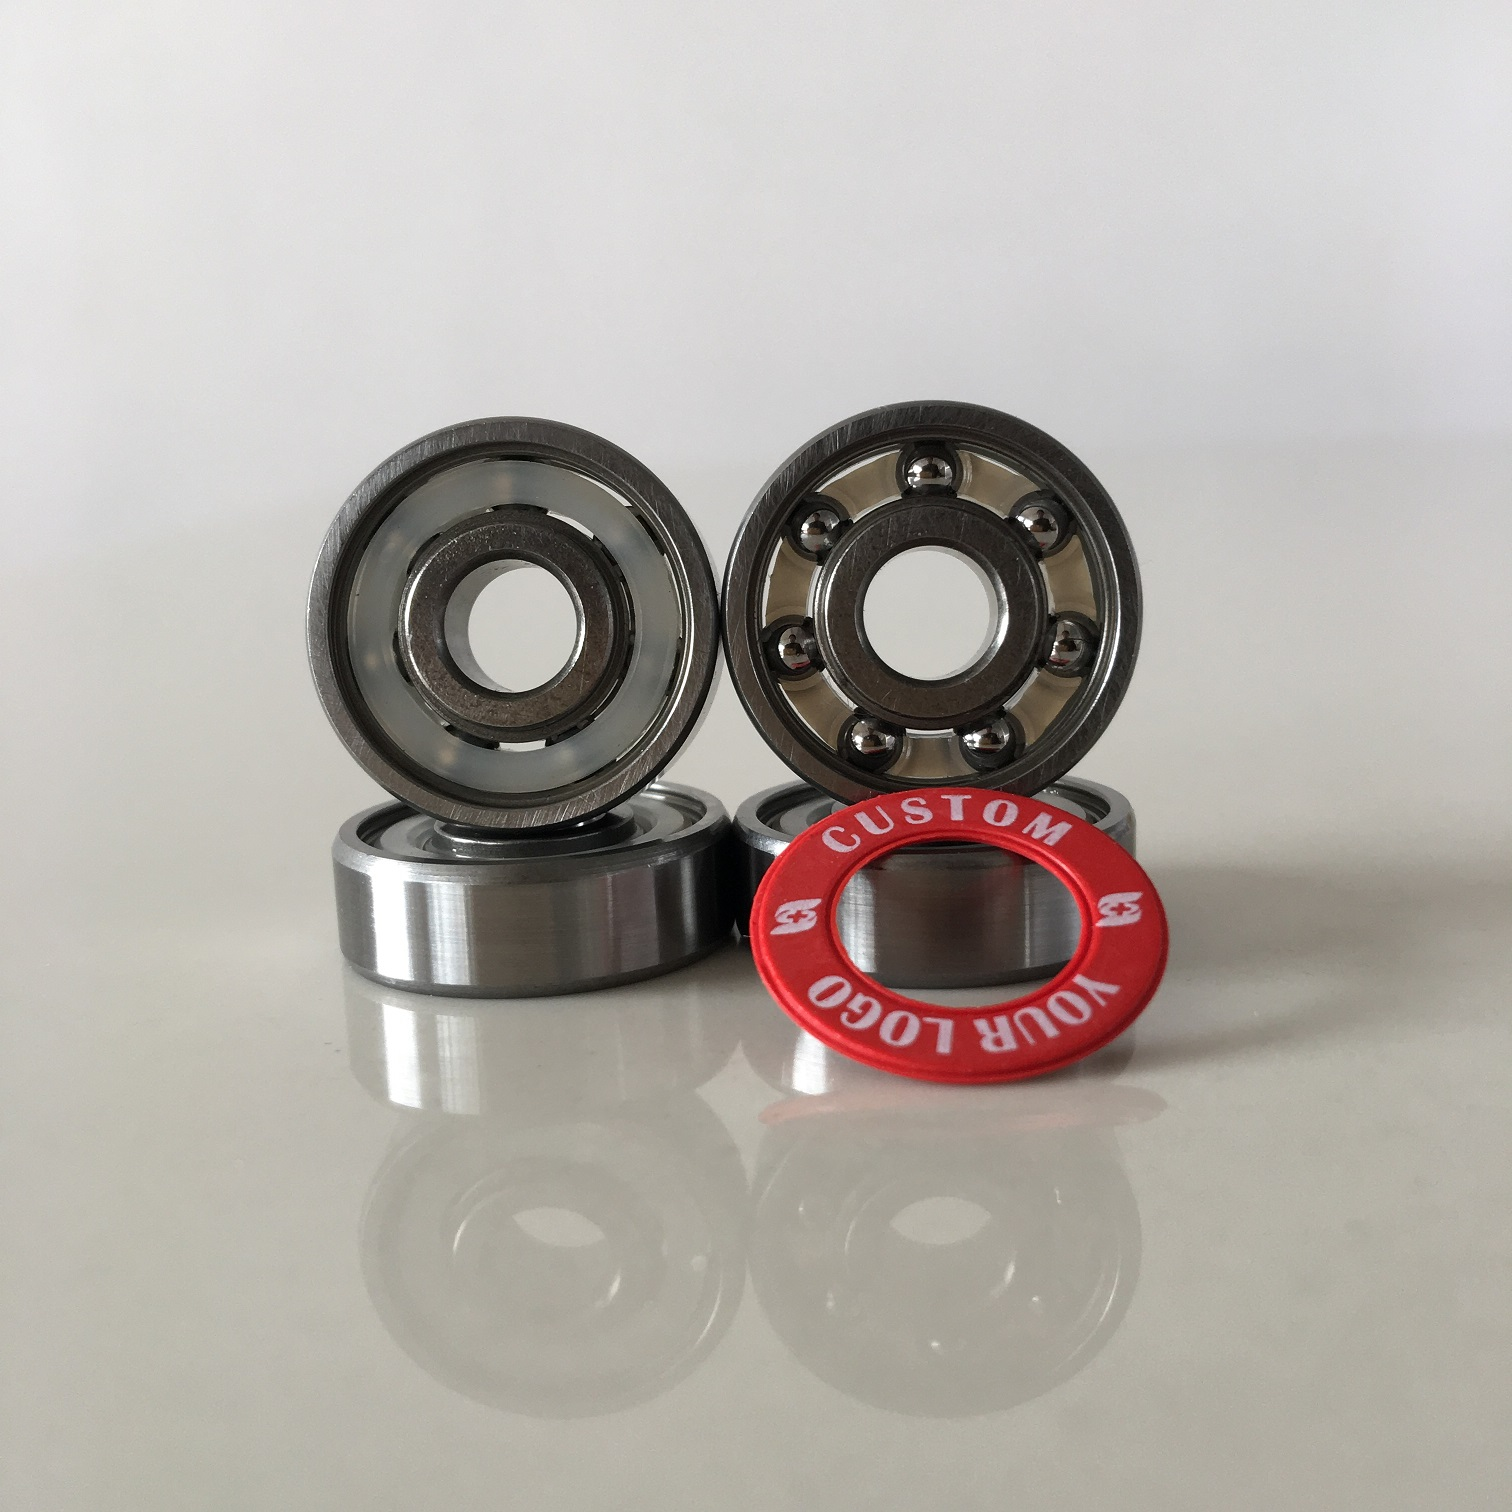 Kingsk8 Skateboard Bearings